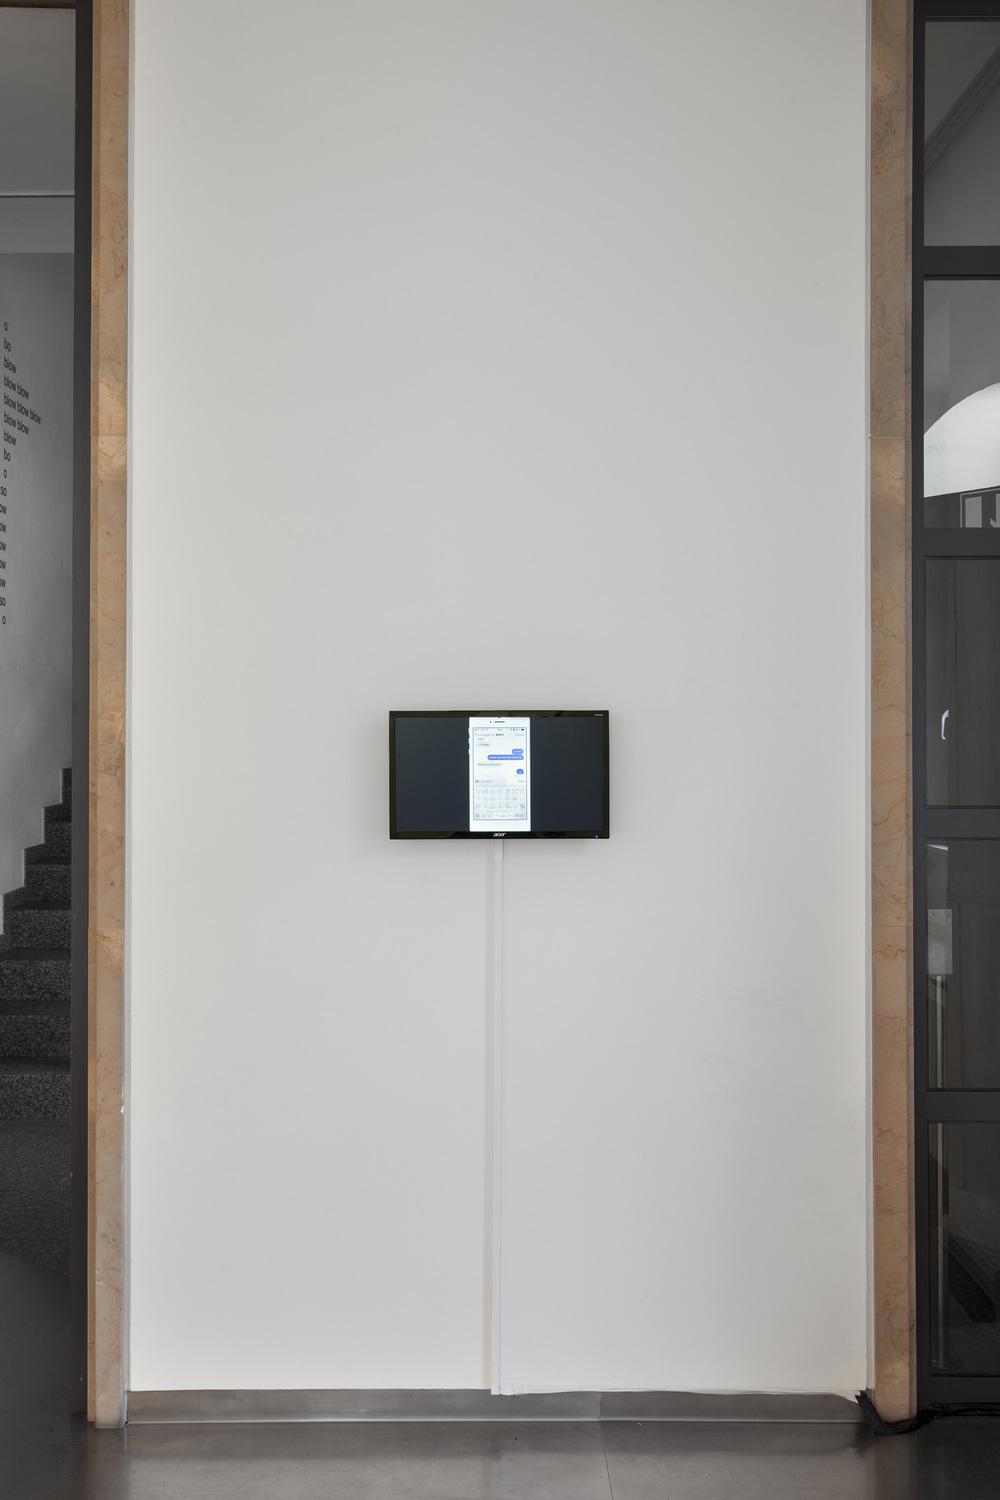 Exhibition view Eugen Gomringer &, Bielefelder Kunstverein, 2015, photo: Philipp Ottendîrfer